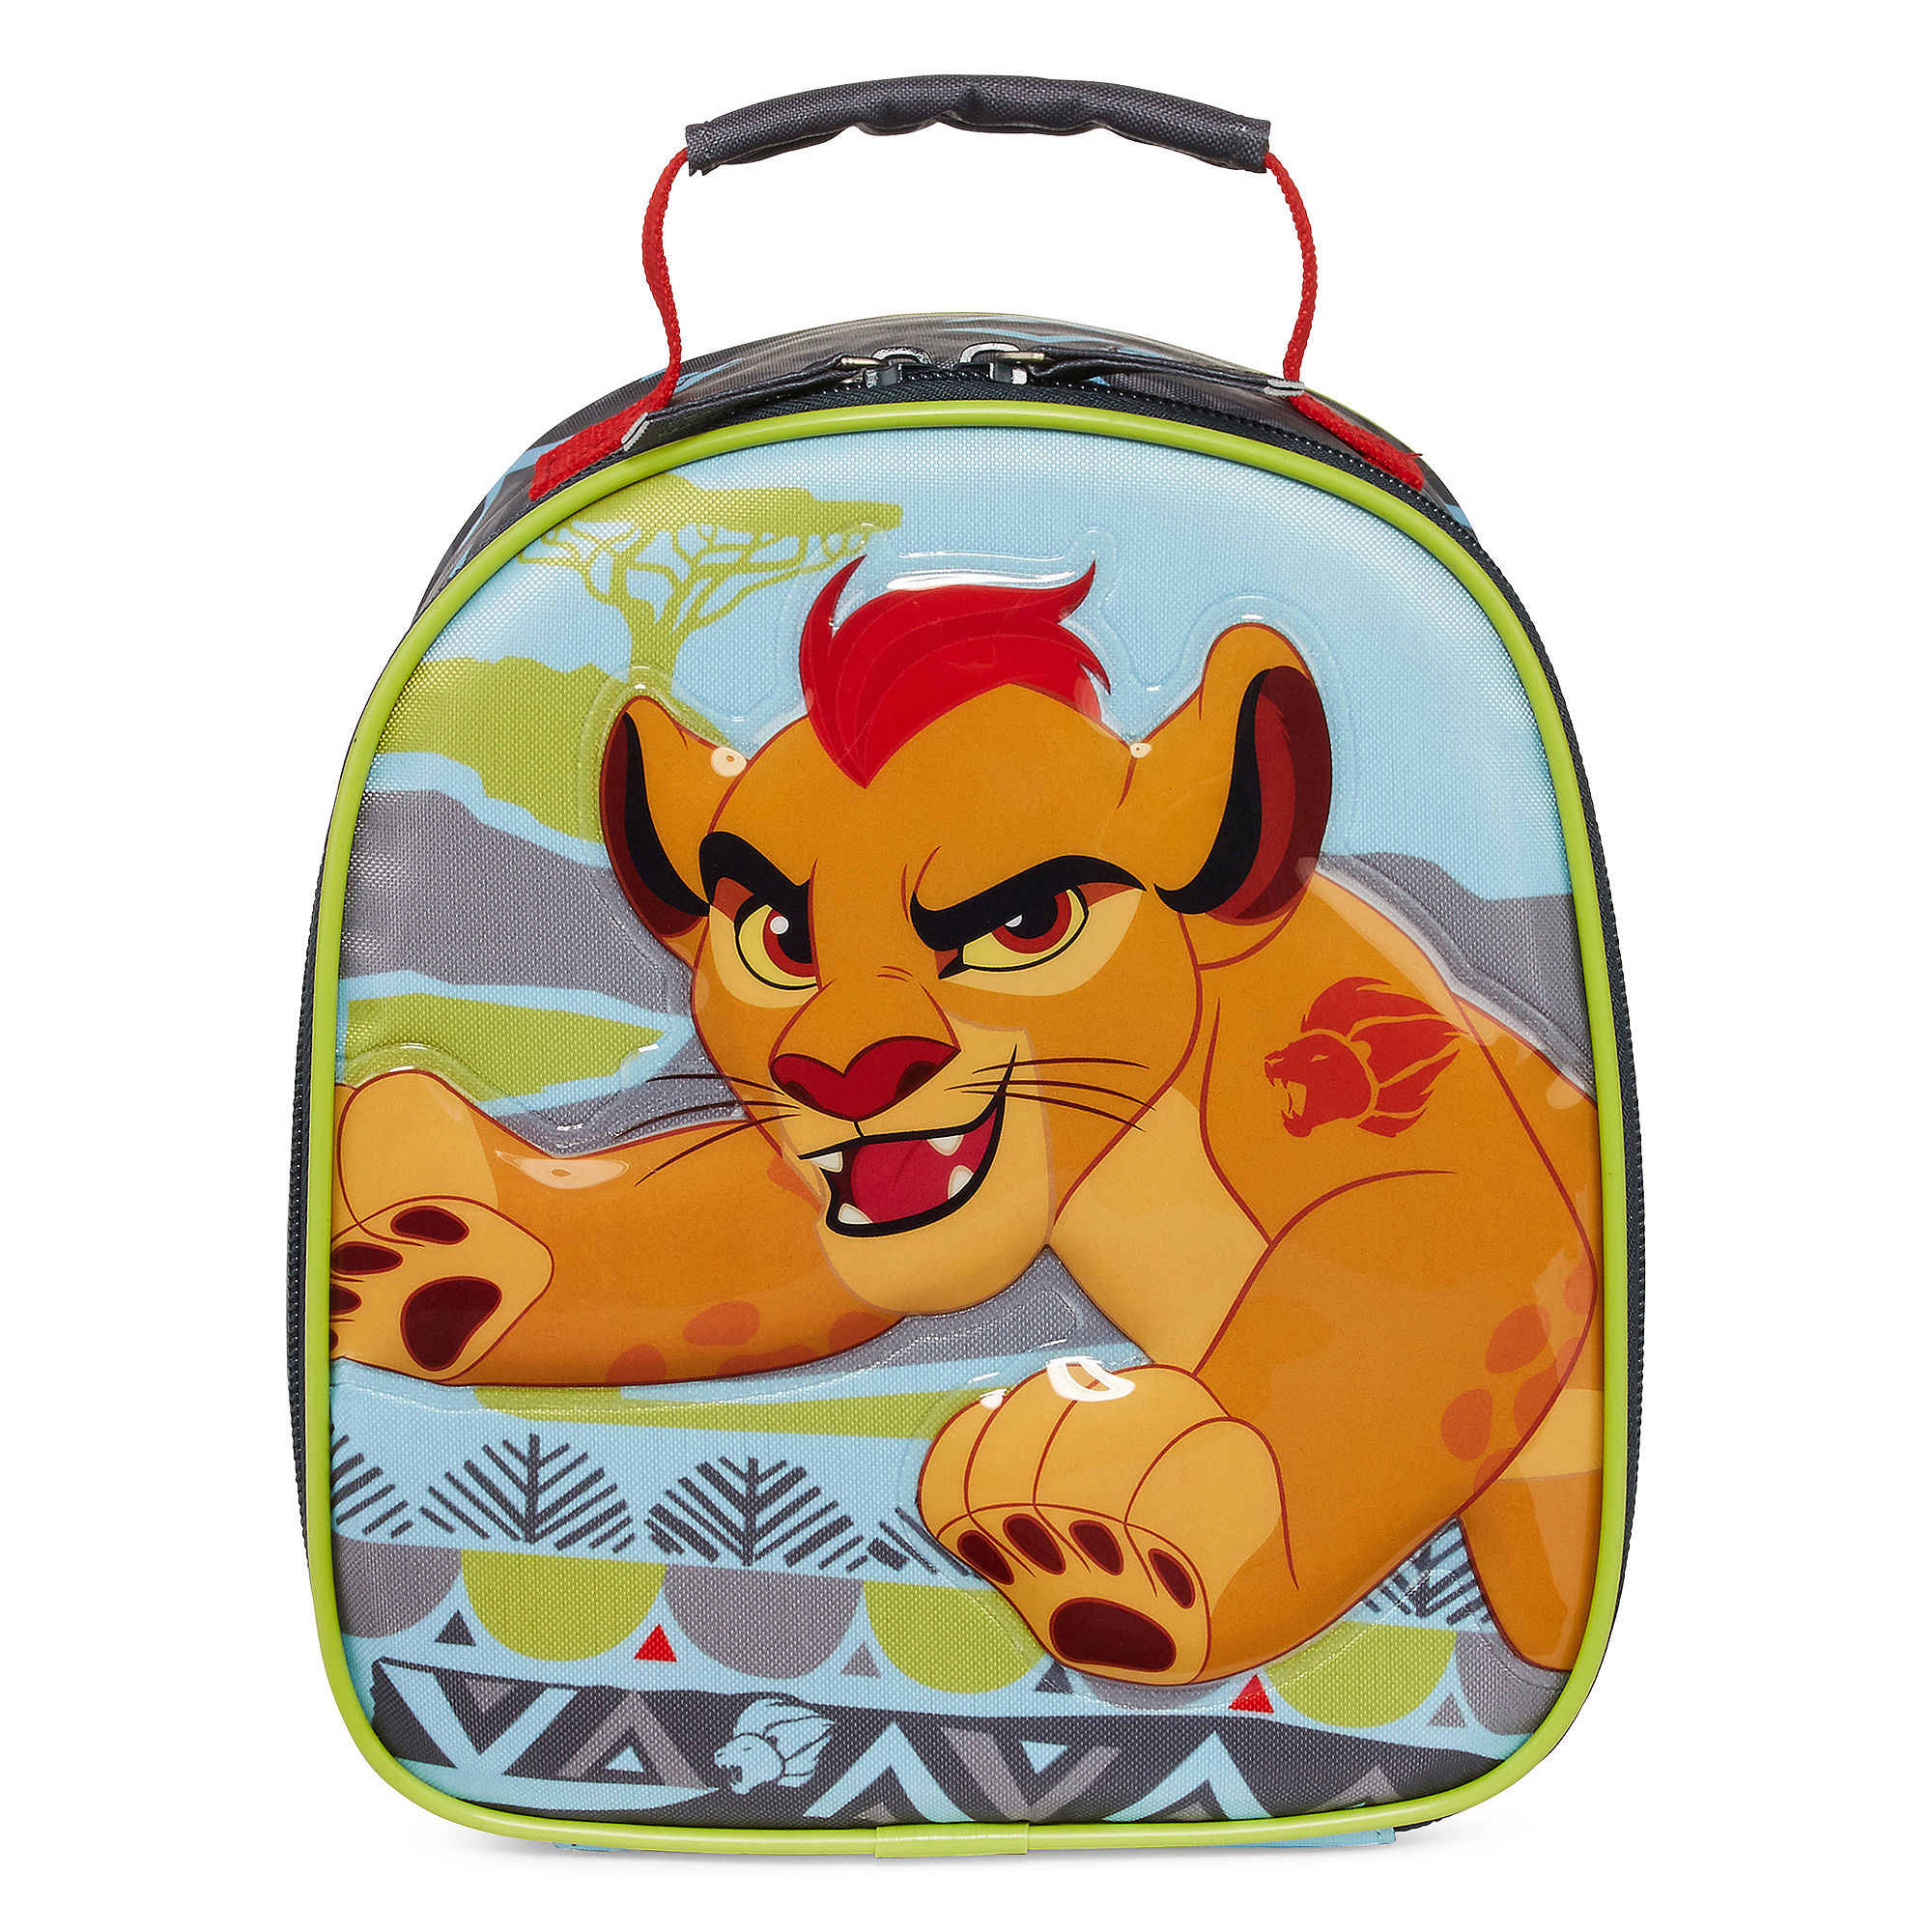 Disney Collection Lionguard Lunch Tote